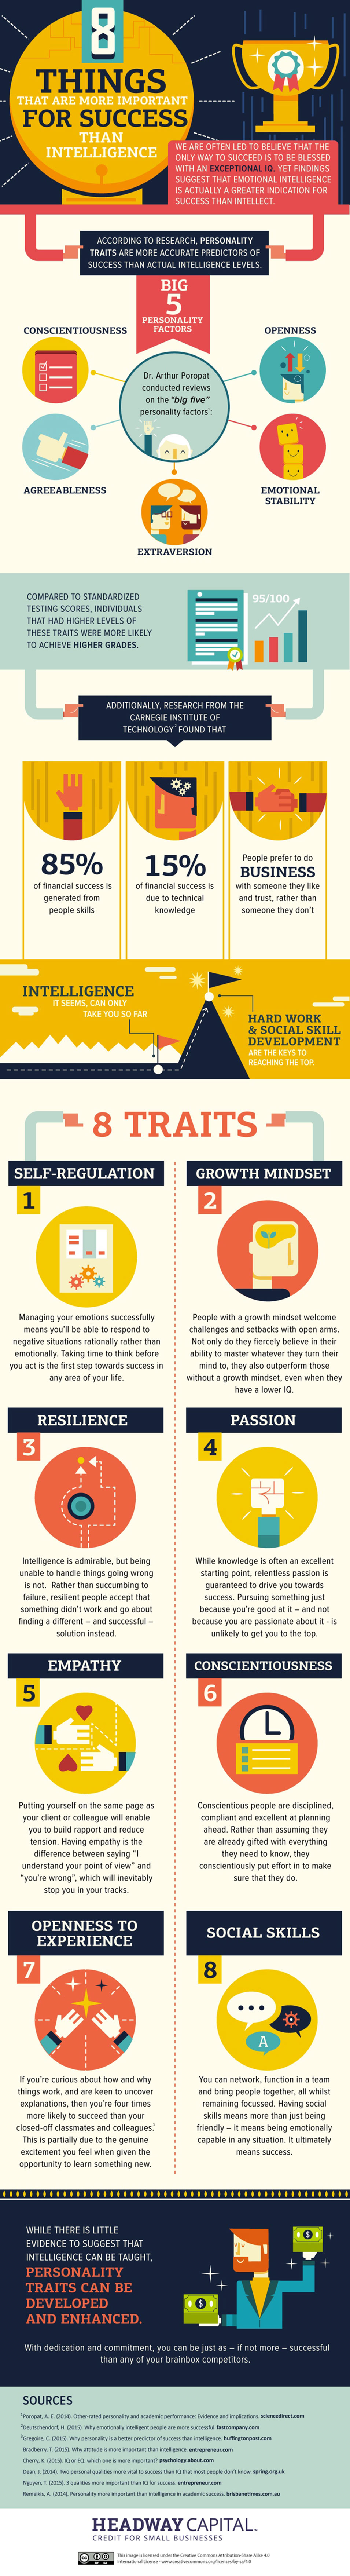 8 Things That Are More Important For Success Than Intelligence Infographic